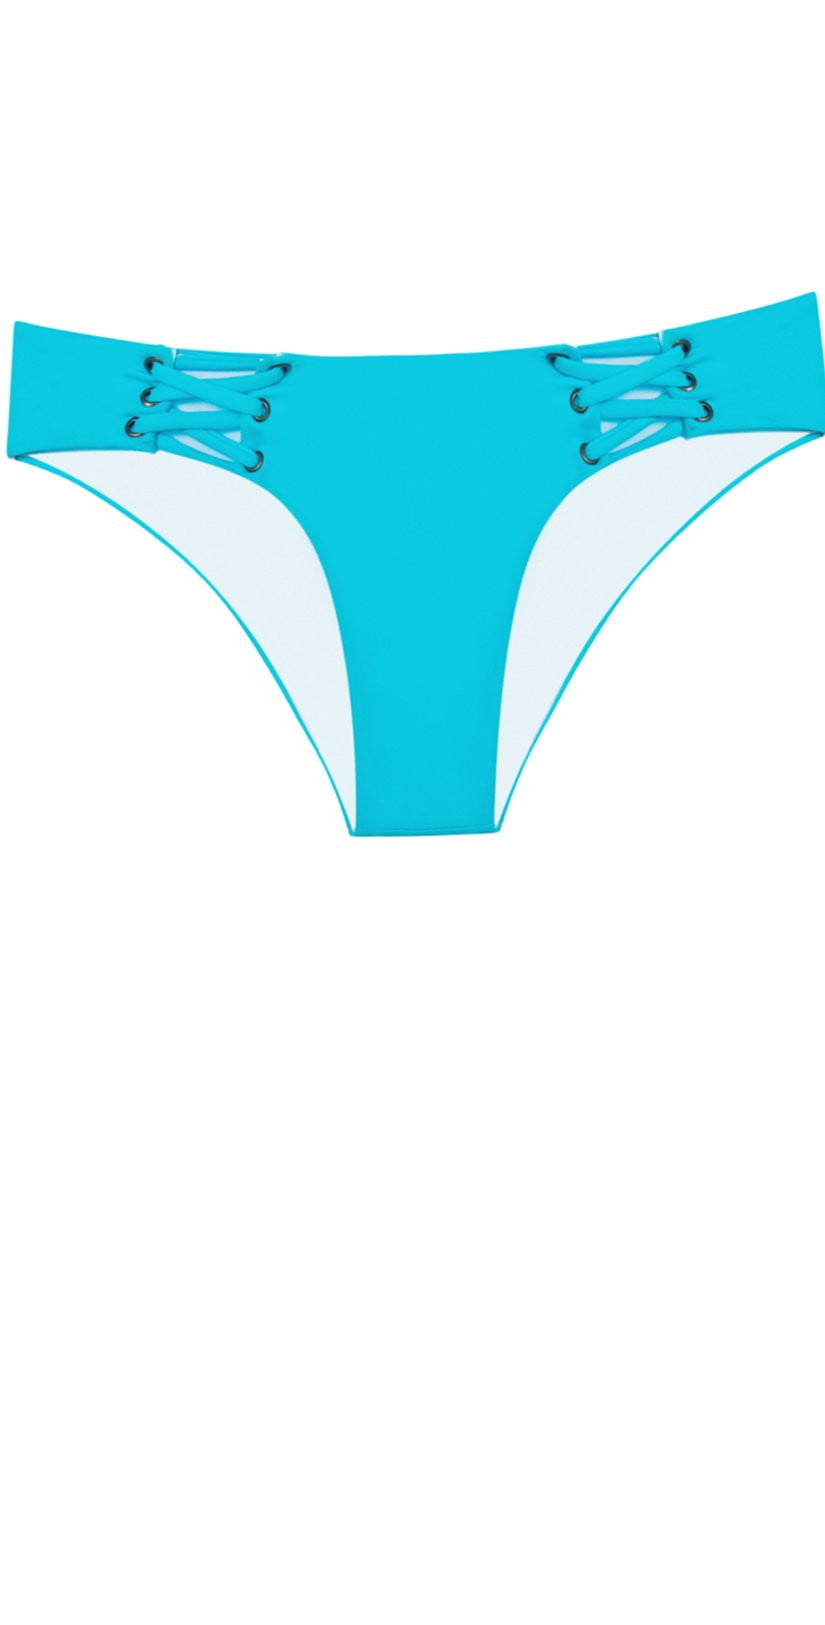 PilyQ Lace-Up Teeny Cut Bottoms in Marine Blue: